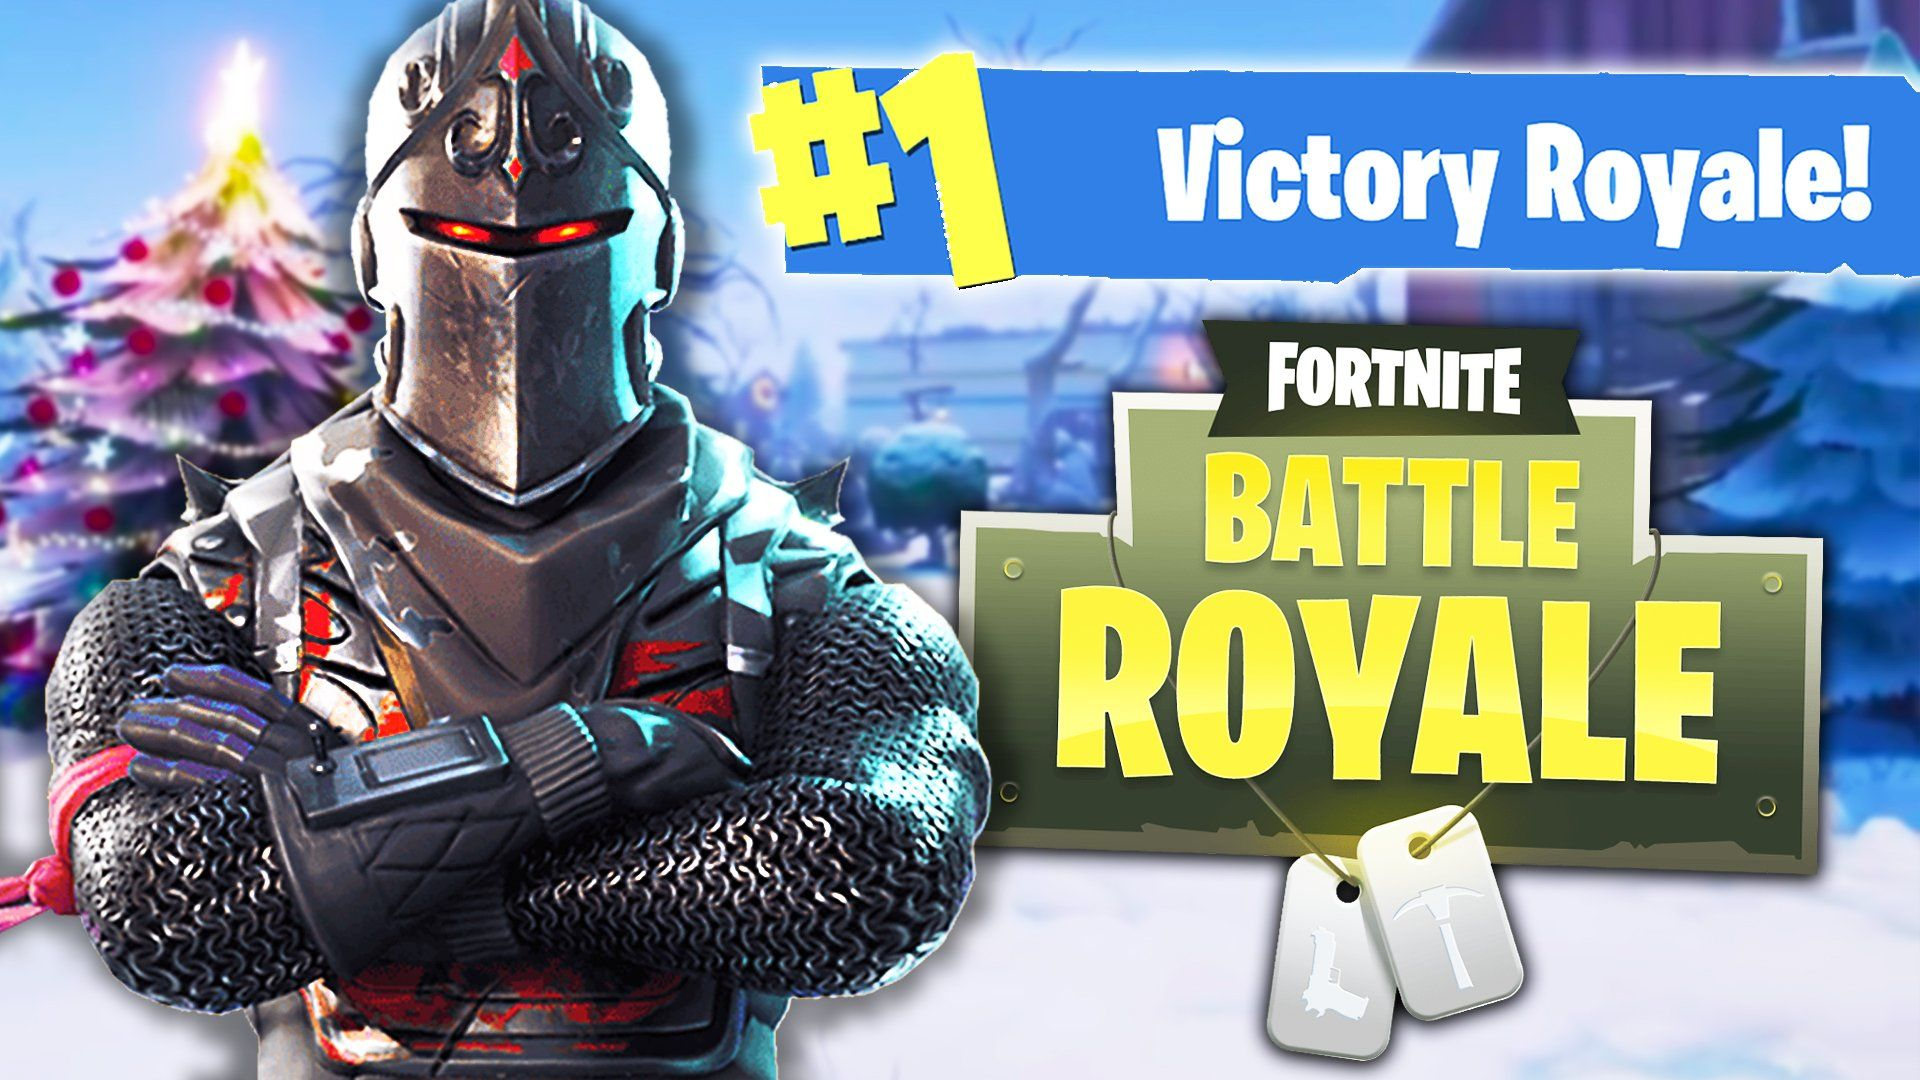 Typical Gamer On Twitter - Fortnite Victory Royale Backgrounds , HD Wallpaper & Backgrounds